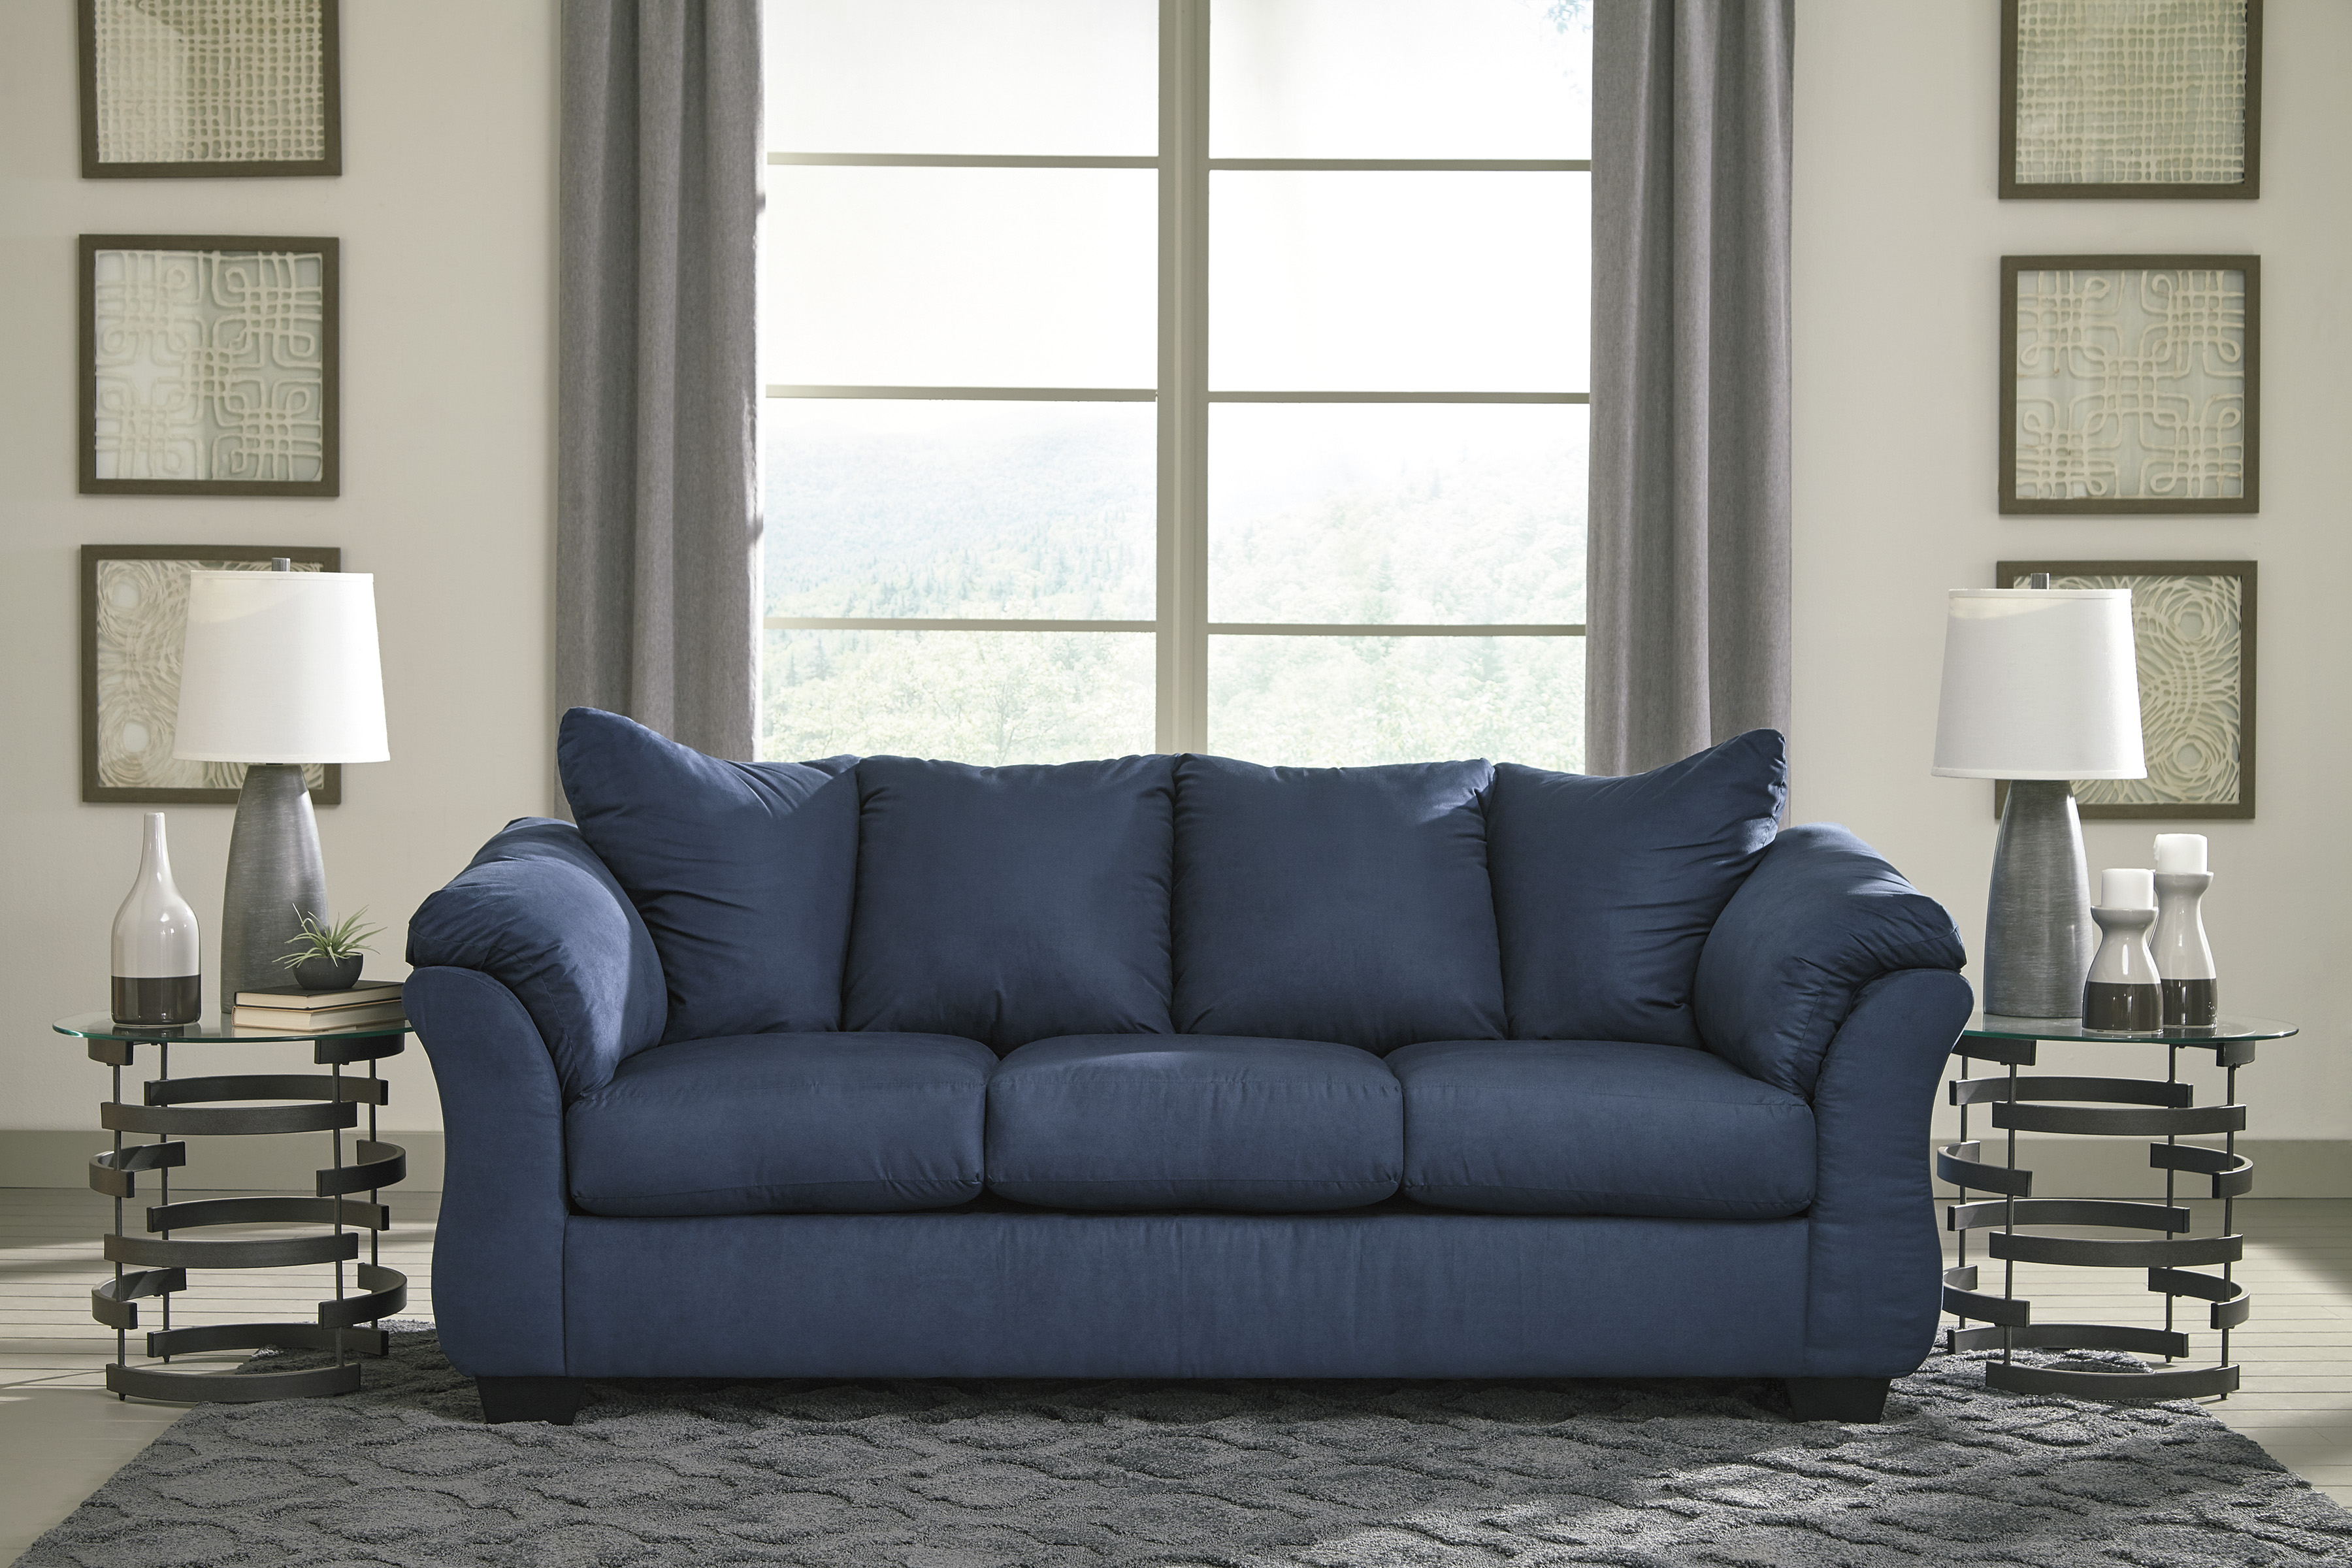 Darcy Blue Sofa & Loveseat Set | Marjen of Chicago | Chicago ...